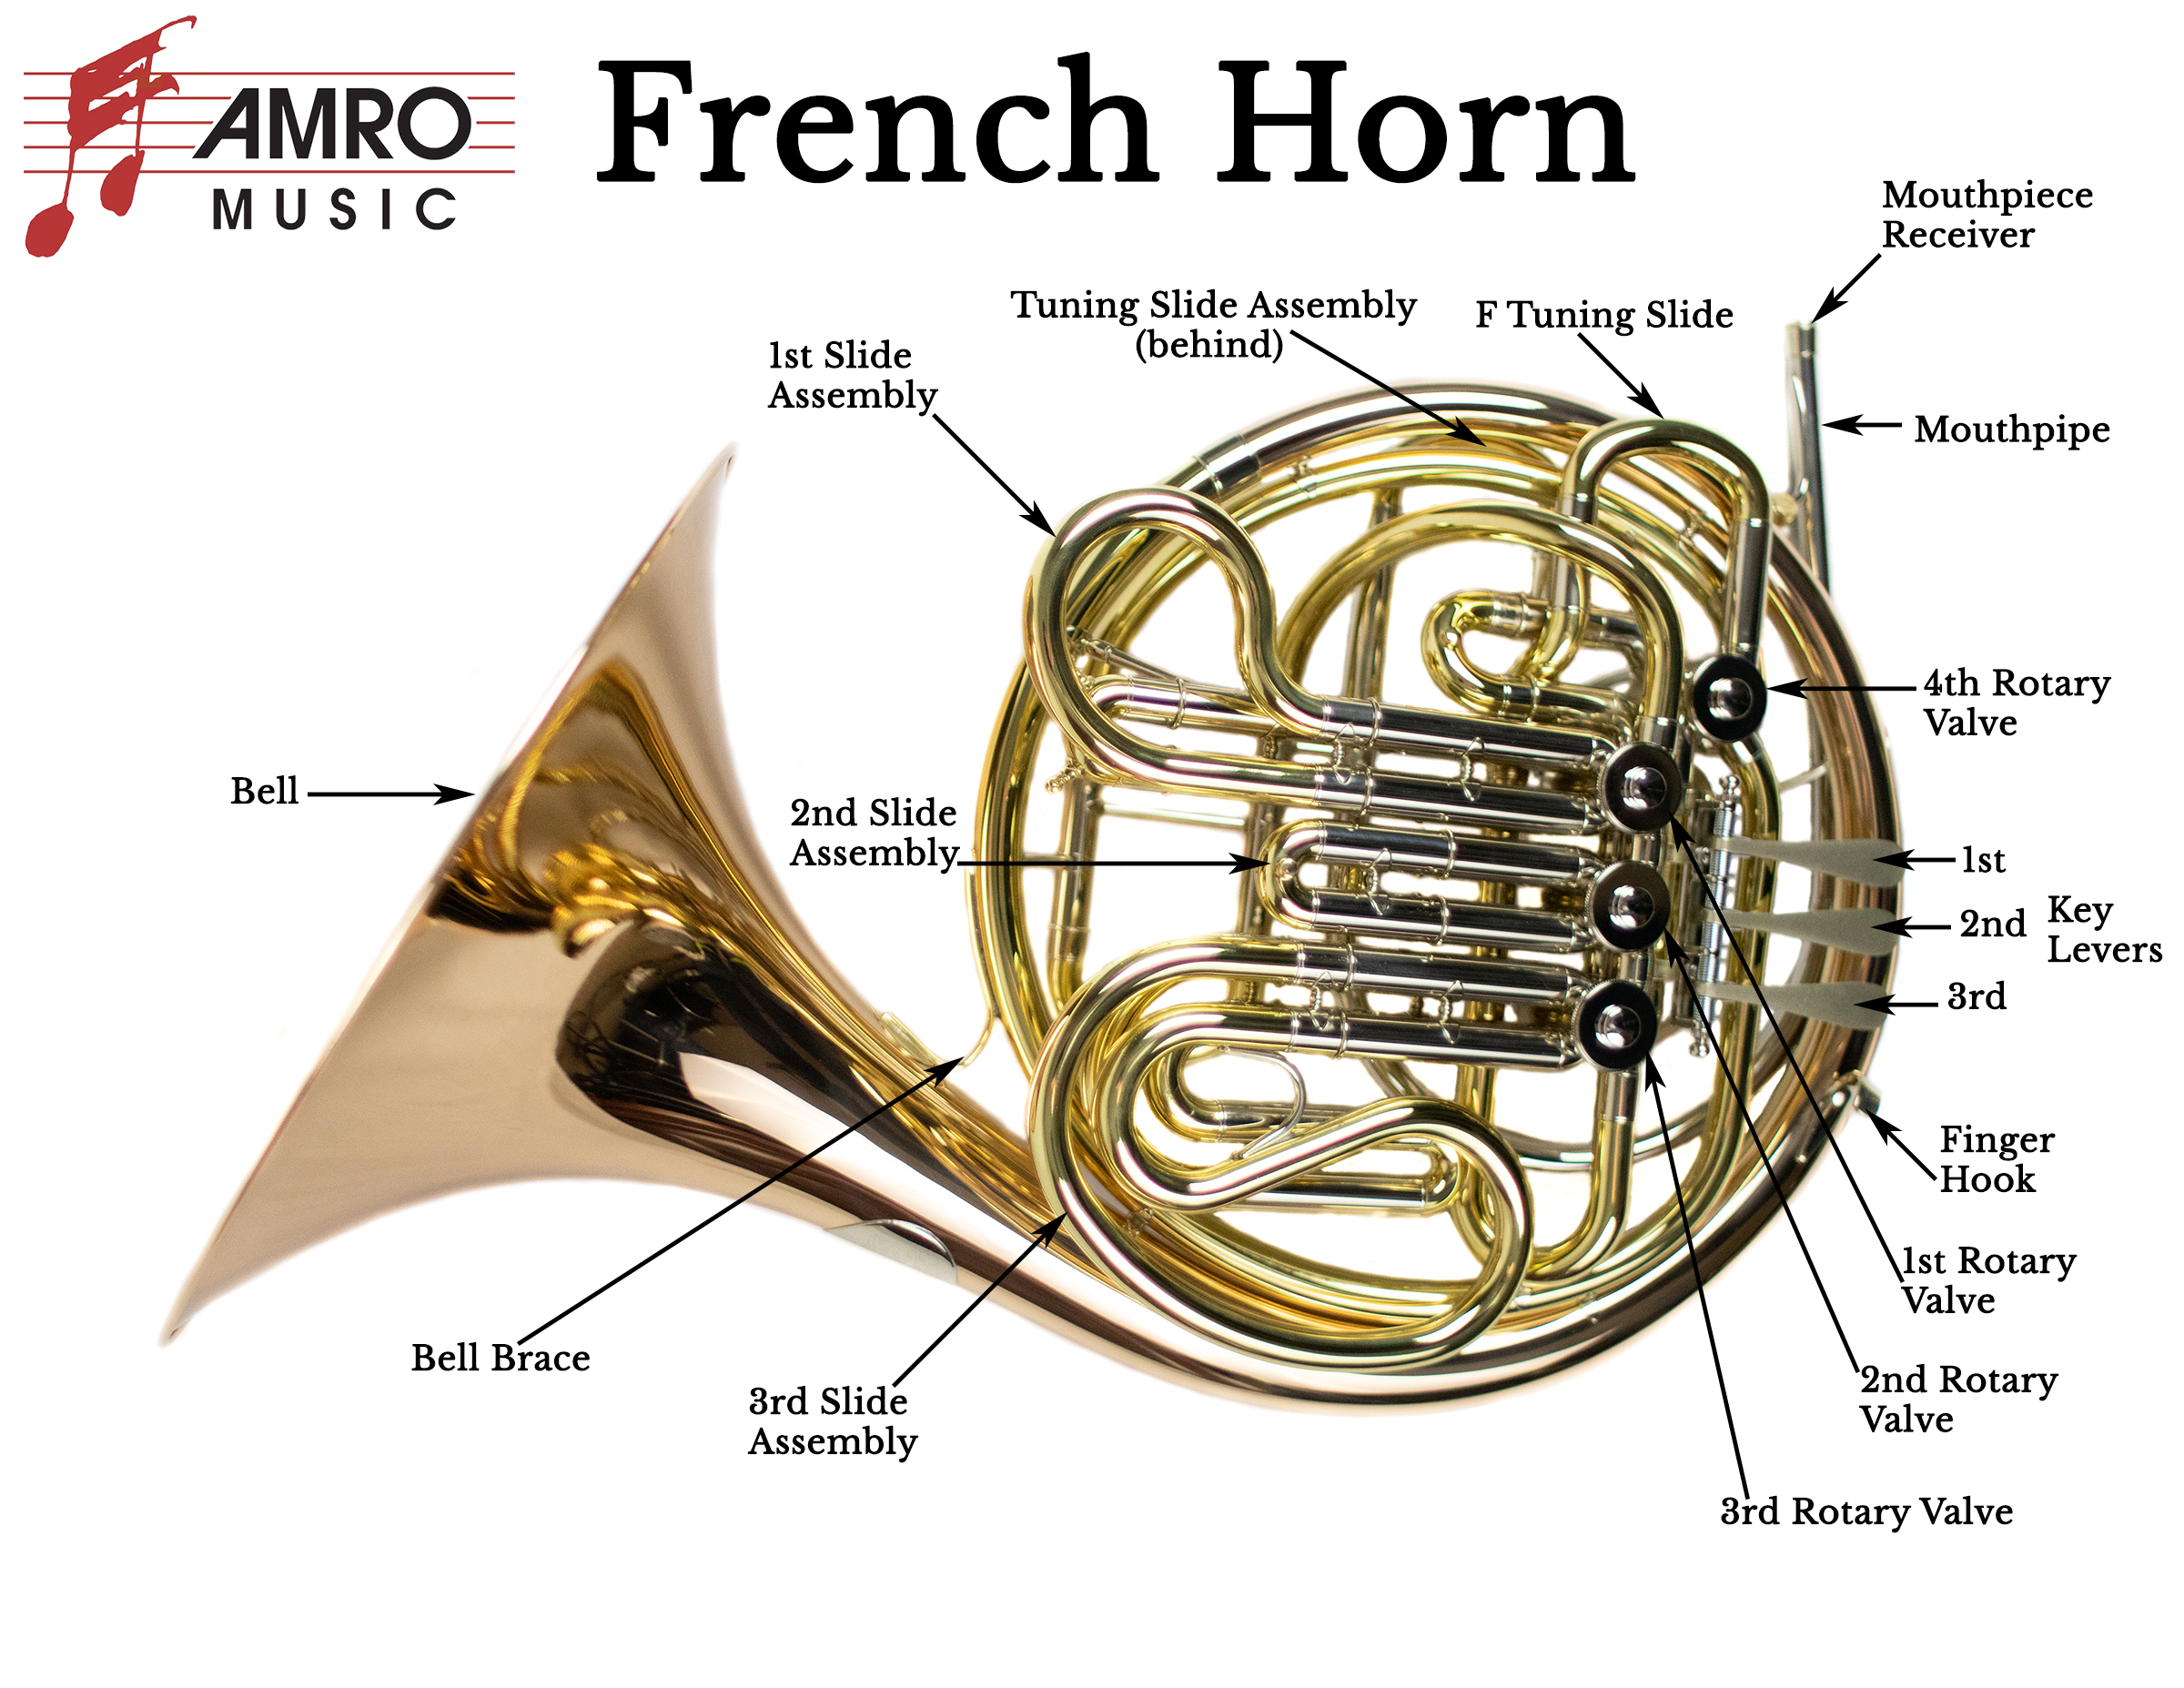 Diagram of French Horn Parts